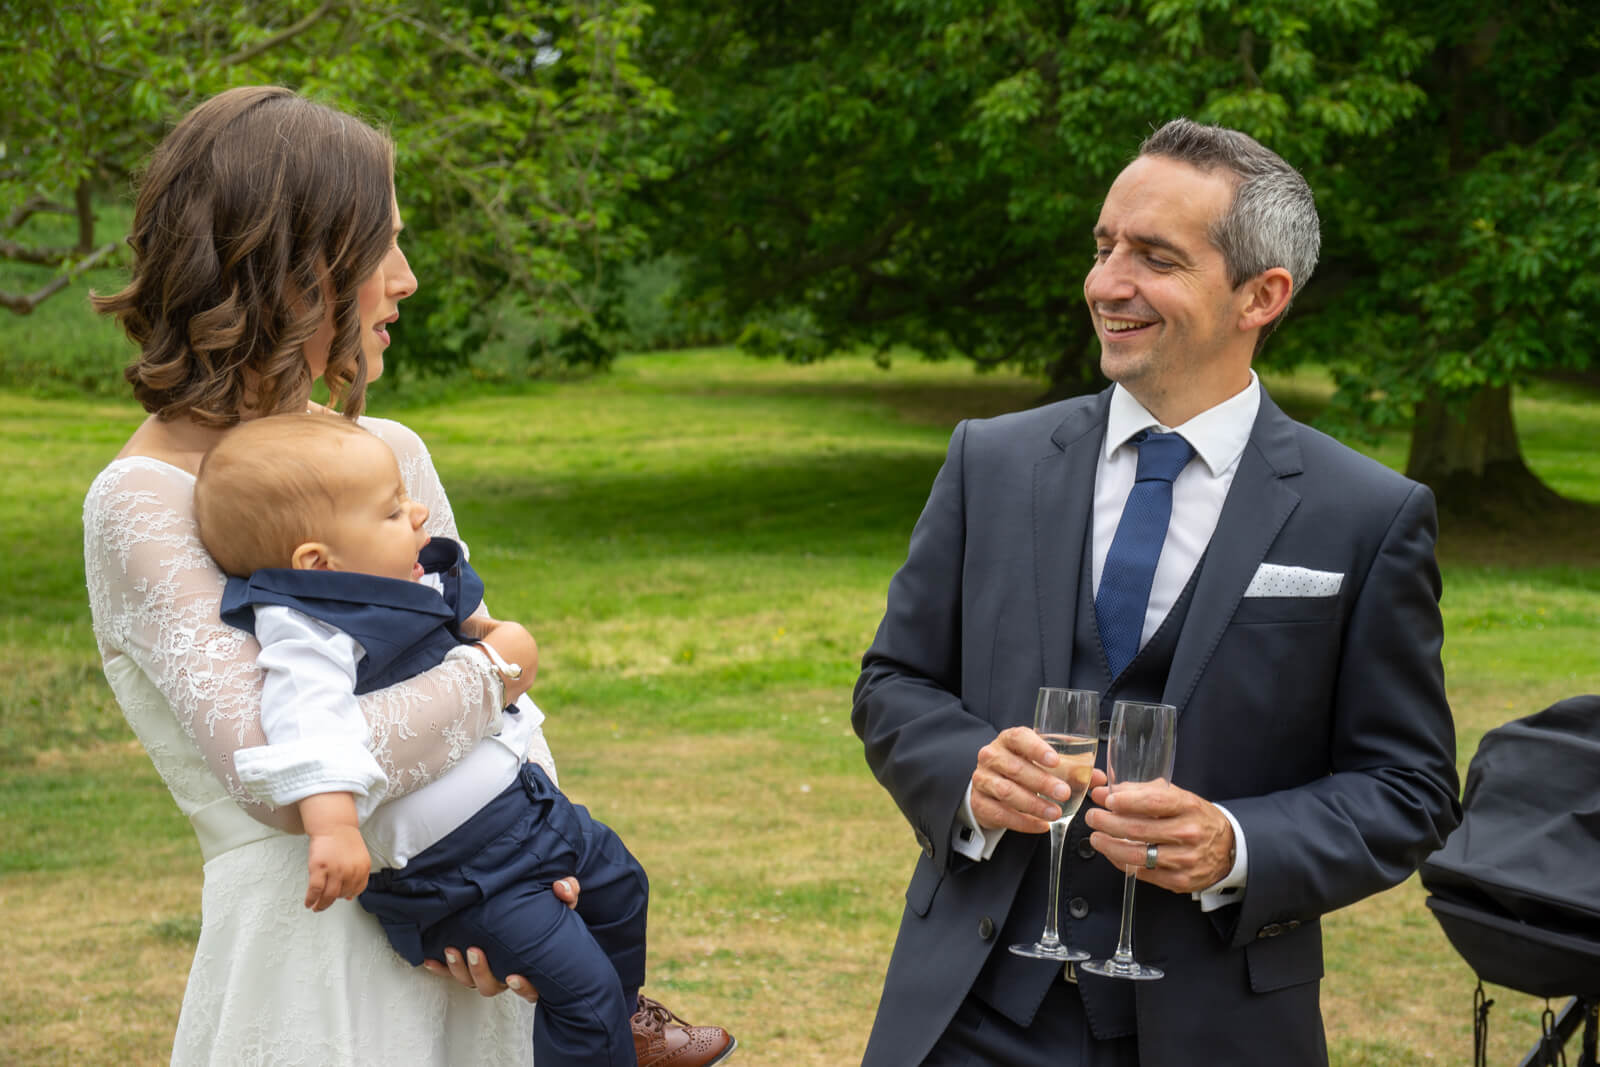 Bride and groom laugh while she holds the baby and he holds champagne